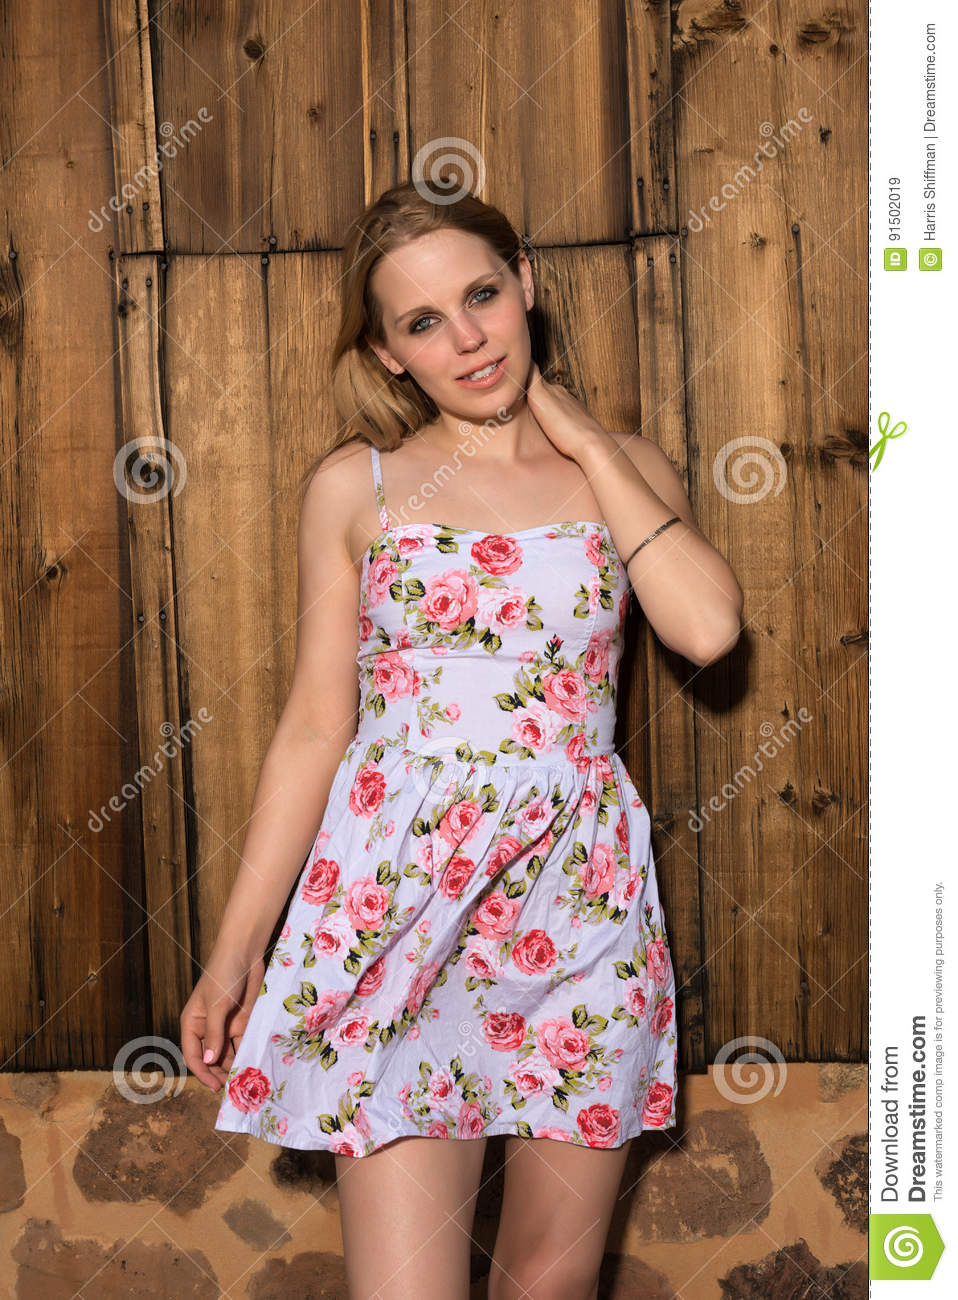 f971d32dbd2 Blonde in a summer dress stock image. Image of attractive - 91502019